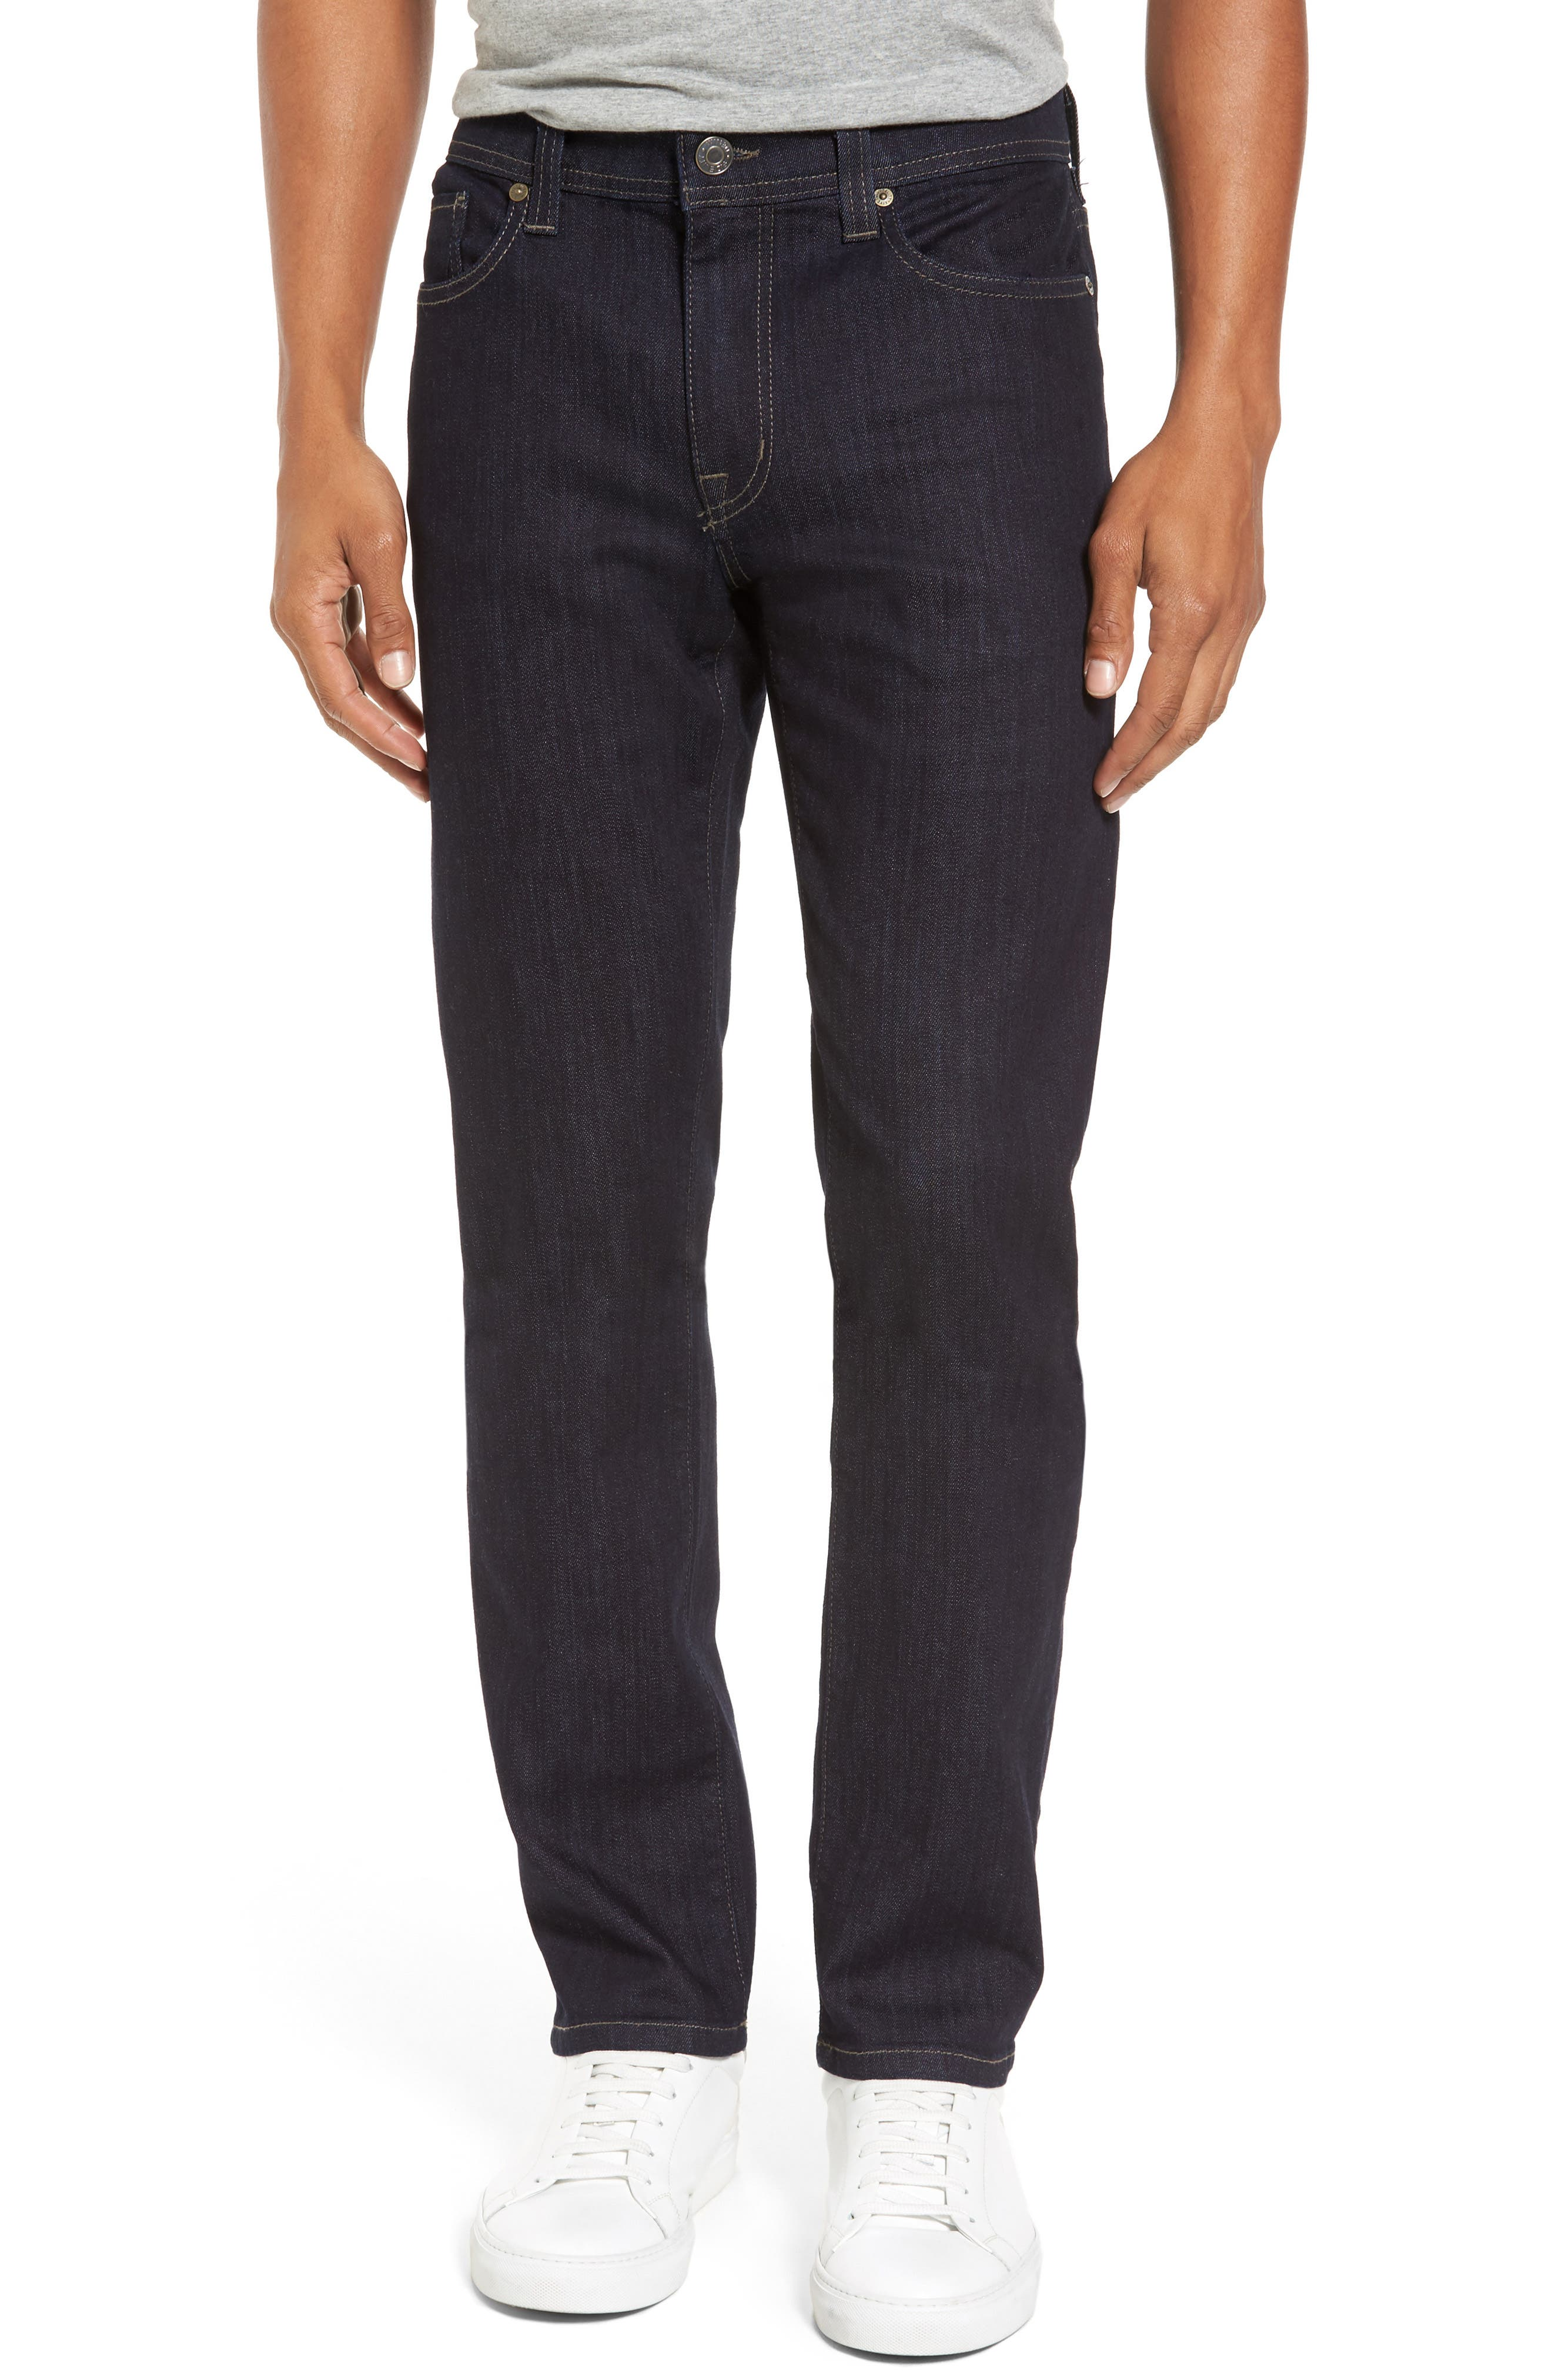 Alternate Image 1 Selected - Fidelity Denim Jimmy Slim Straight Leg Jeans (Galaxy Rinse)